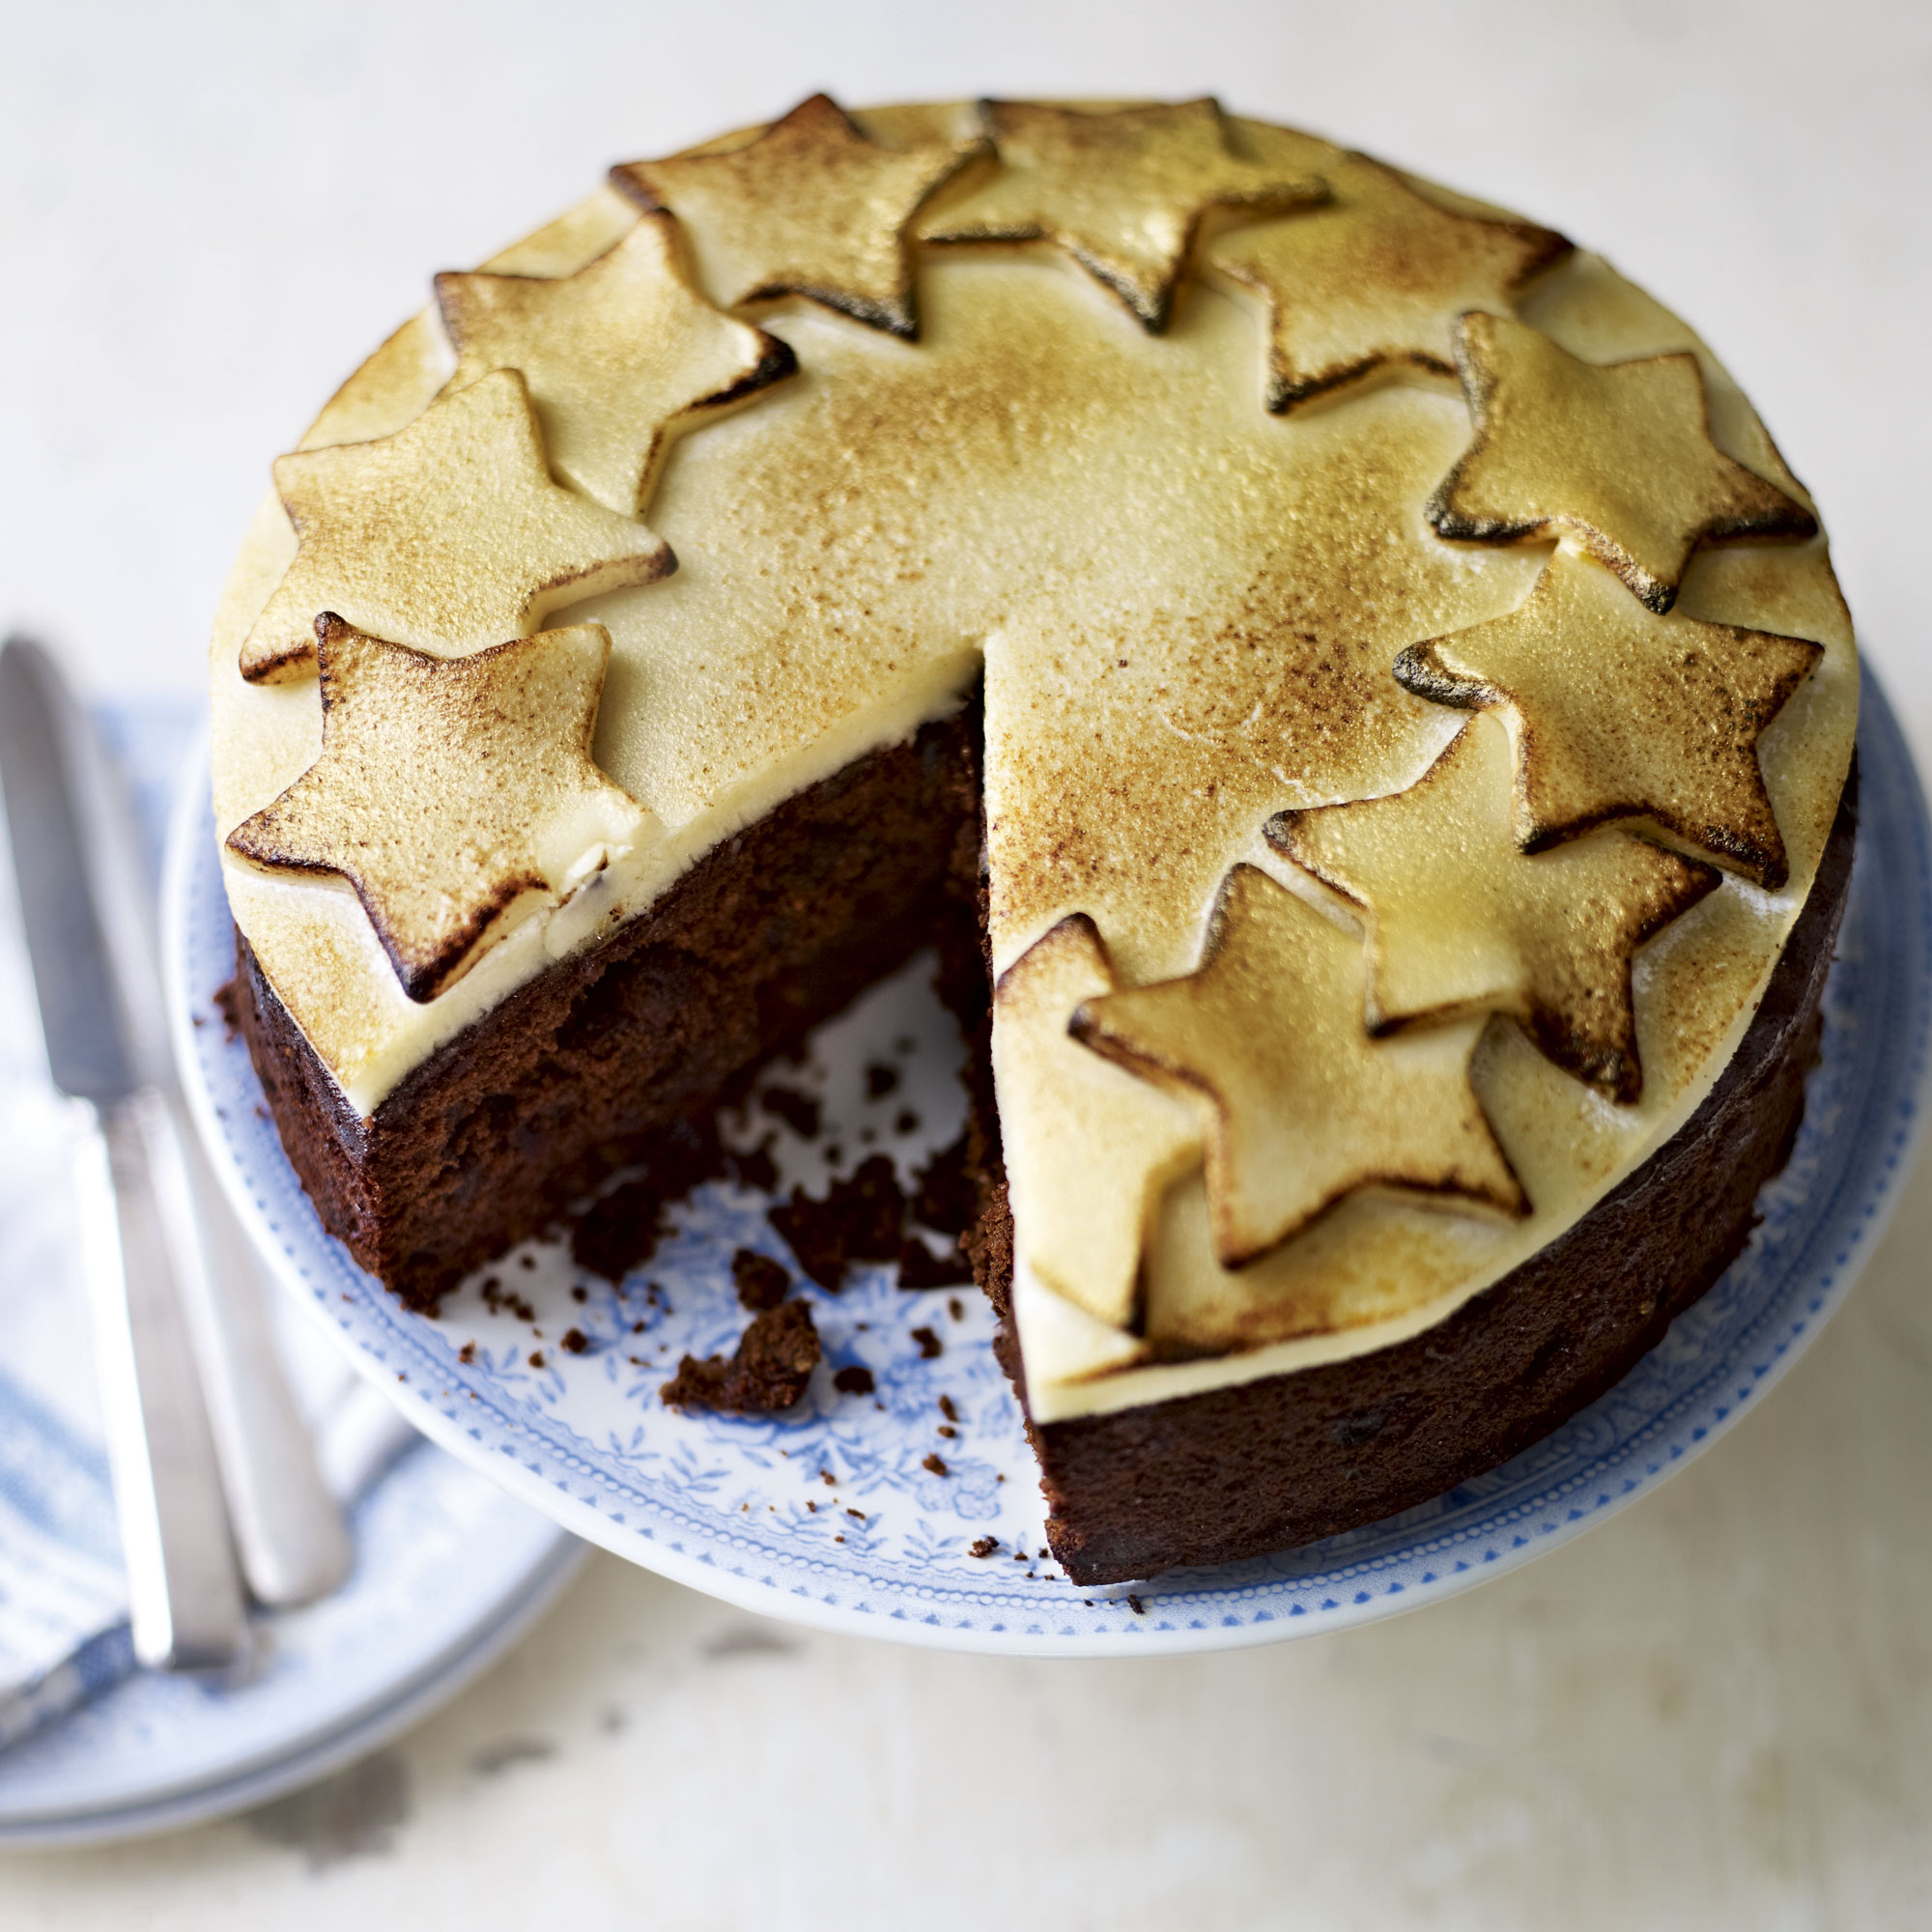 Chocolate Christmas Cake Decorating Ideas : Chocolate Christmas Cake - Woman And Home